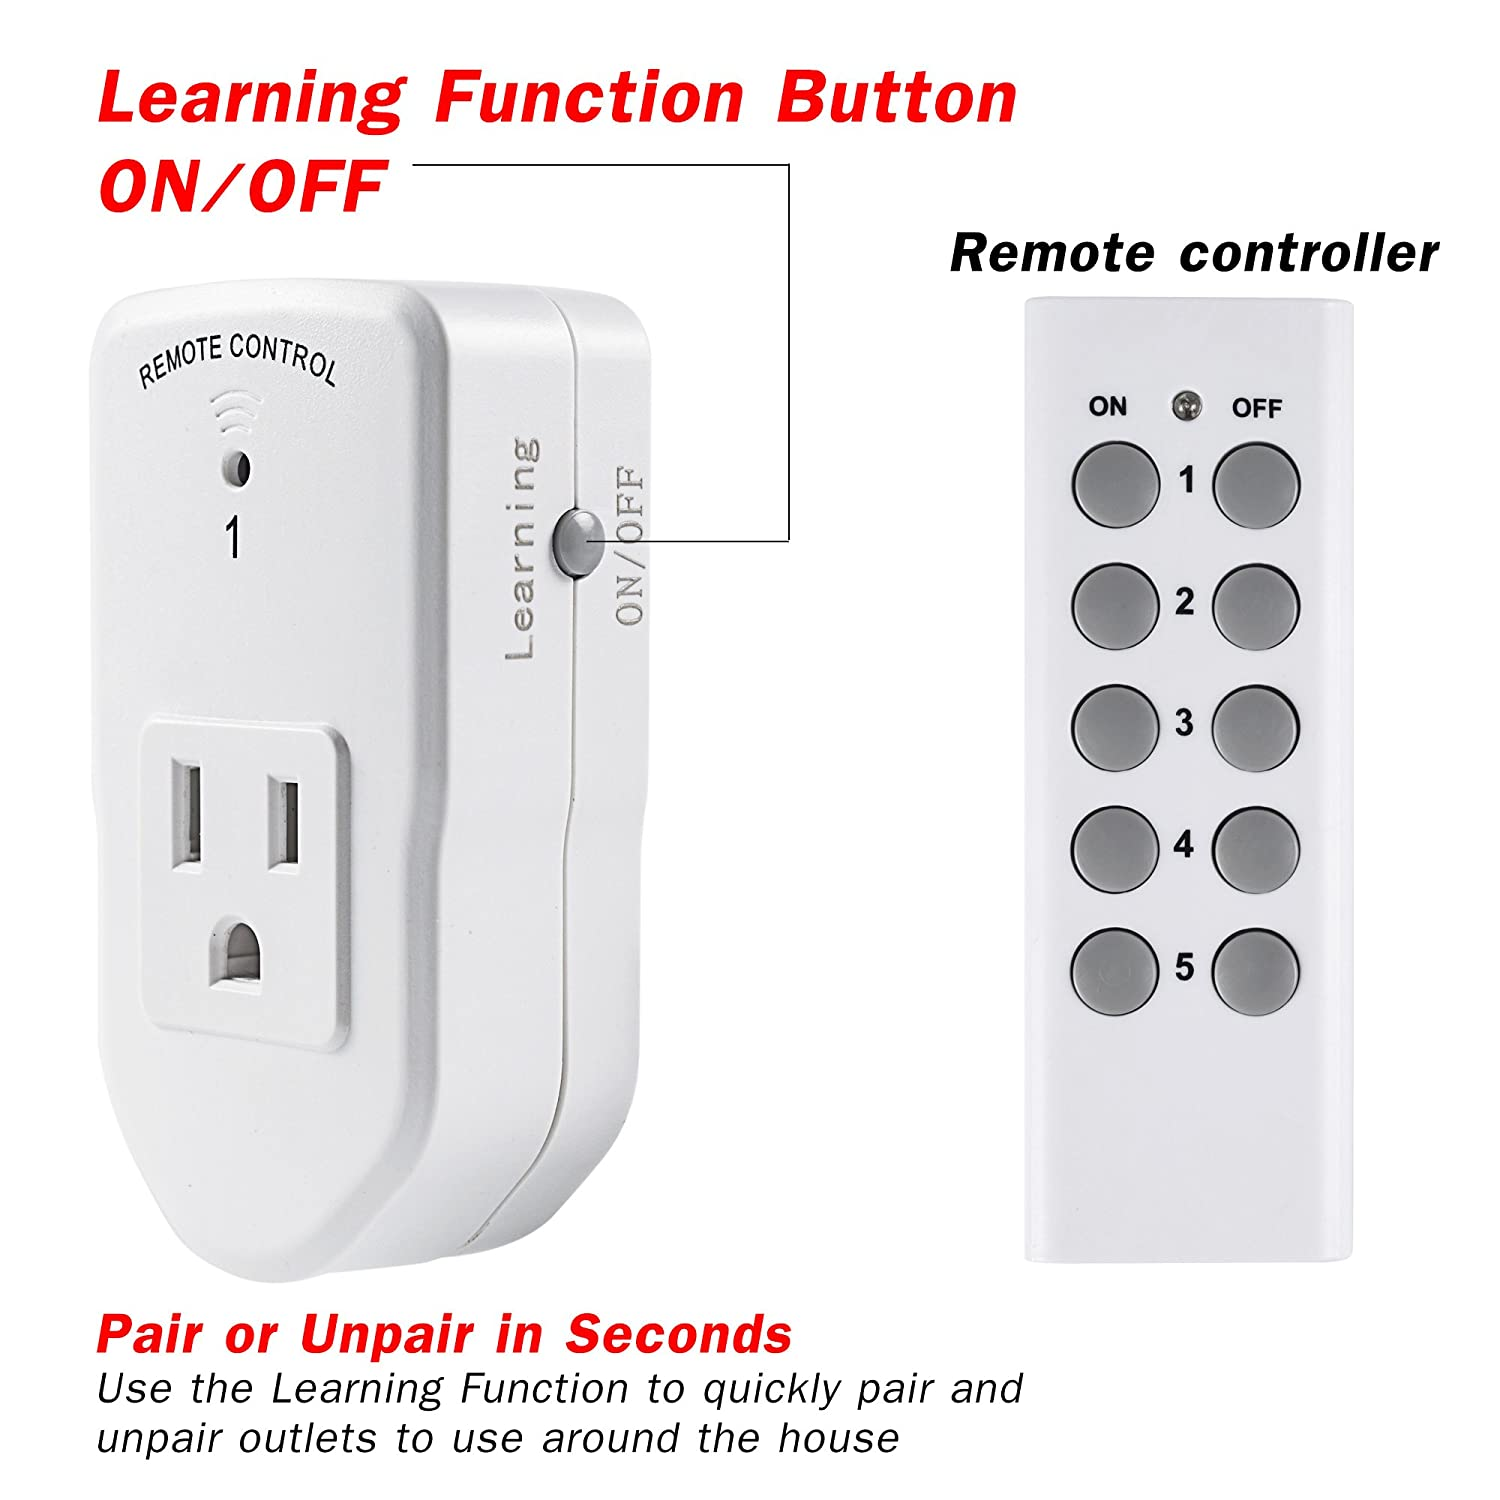 Home and Garden 3 Grounded Outlets With Remote Control Ideal for Decorative Lights Black Century Water Resistant Long Range Wireless Remote Control Electrical Outlet Switch Triple Socket